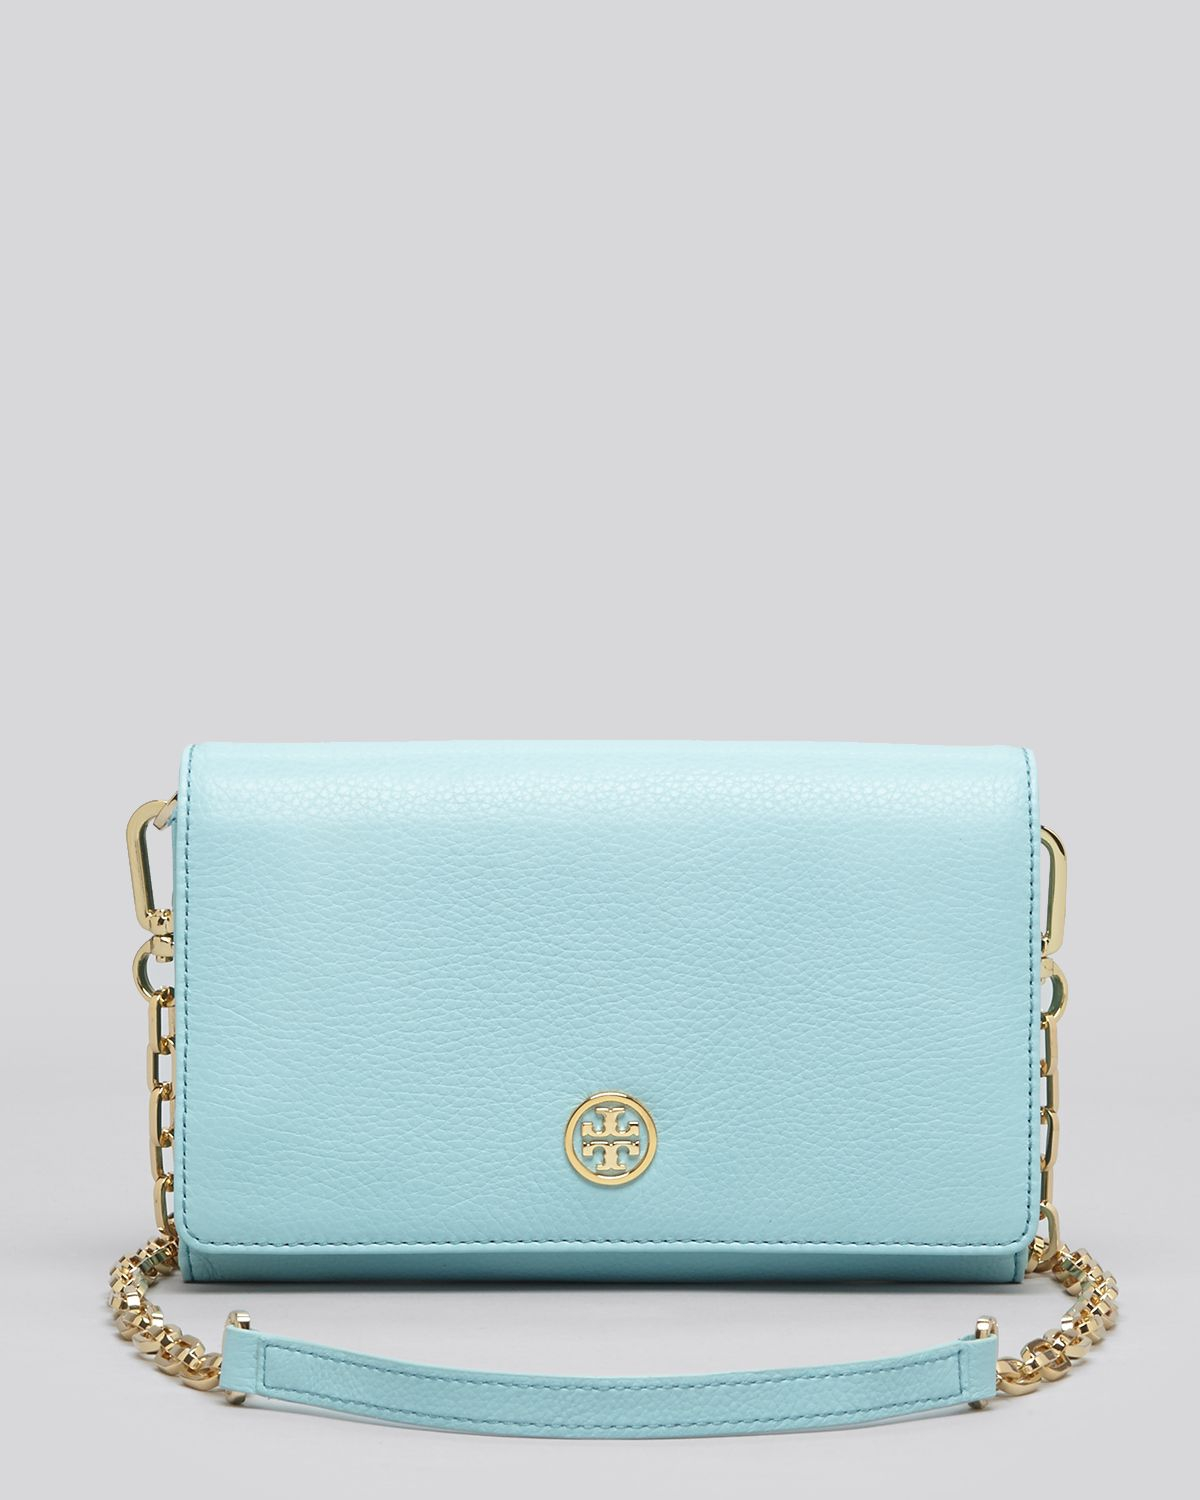 c653bf44c927 Lyst - Tory Burch Mini Bag Robinson Chain Wallet in Blue